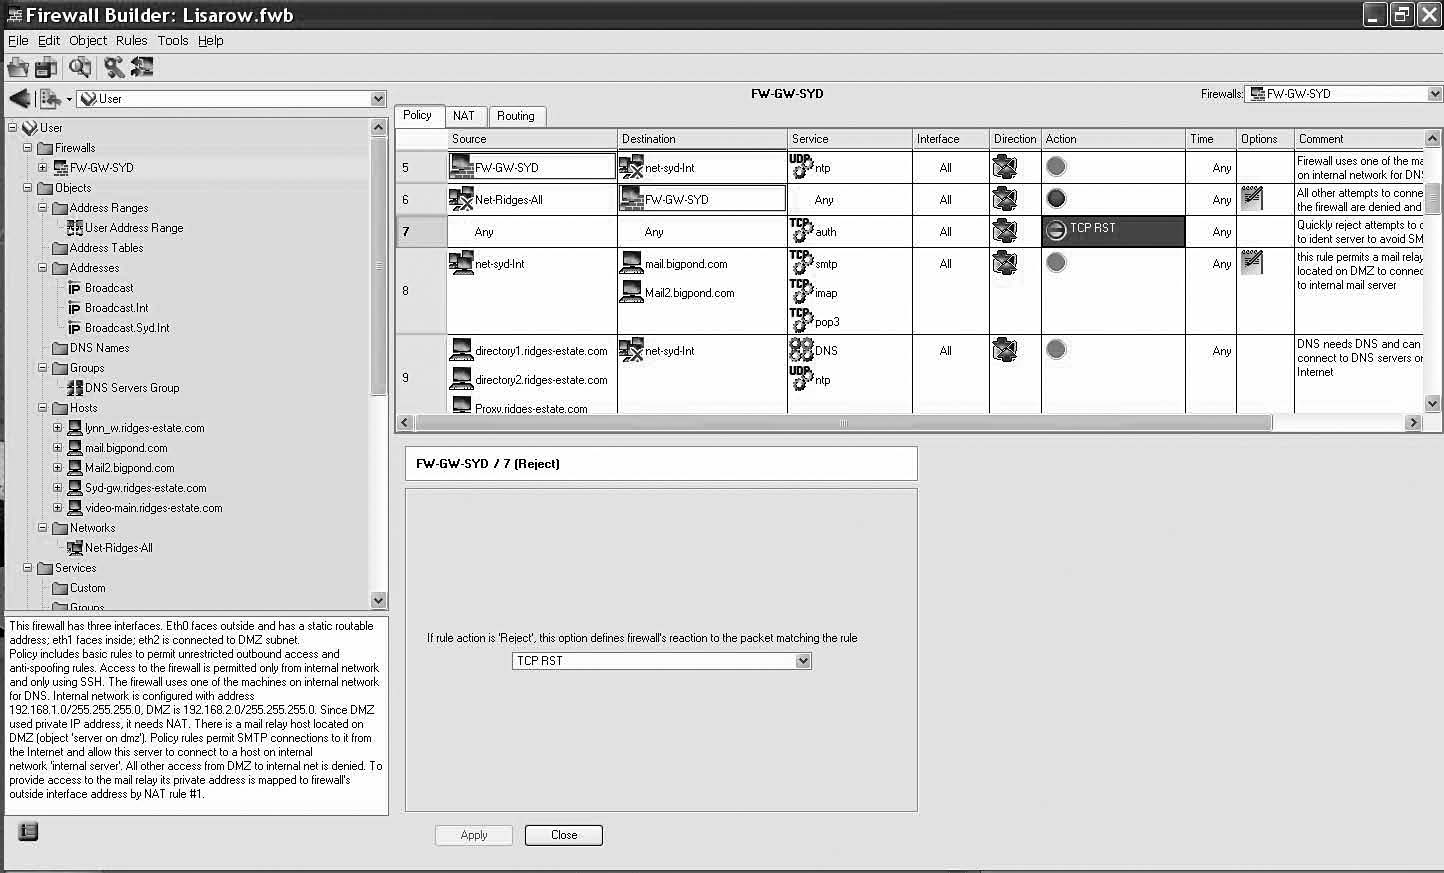 Working with Firewall Builder